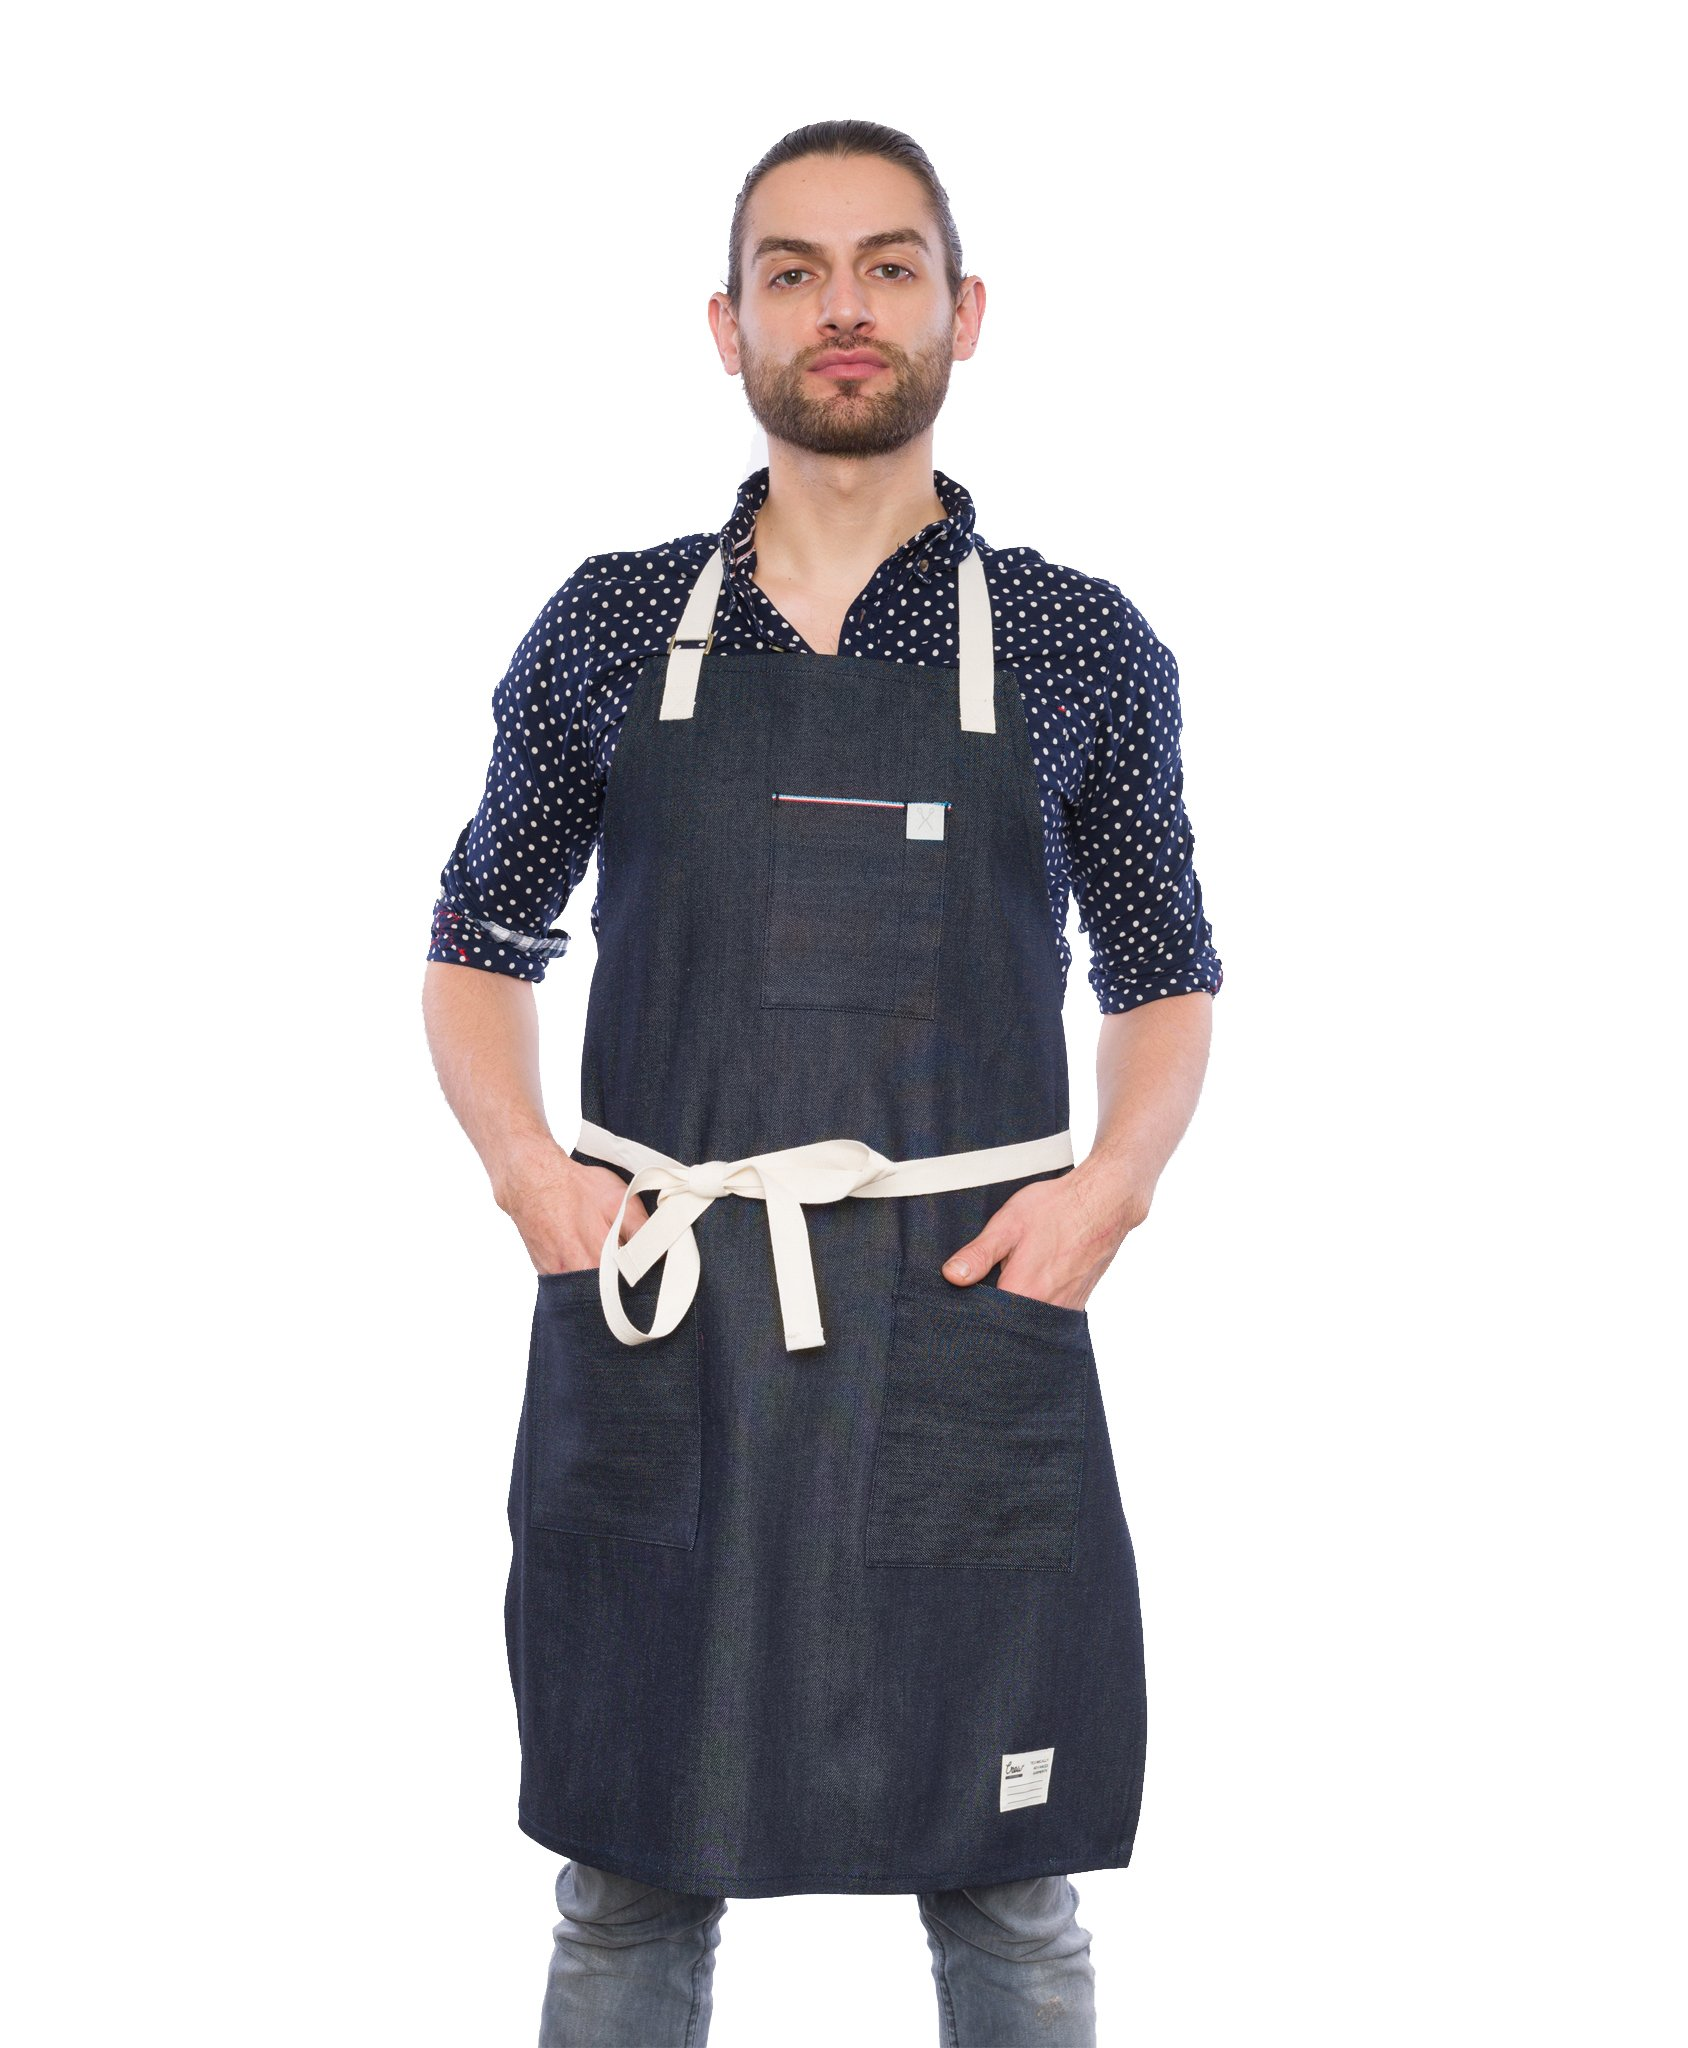 Crew Apparel TriColour Denim Standard Apron Made in USA by Crew Apparel